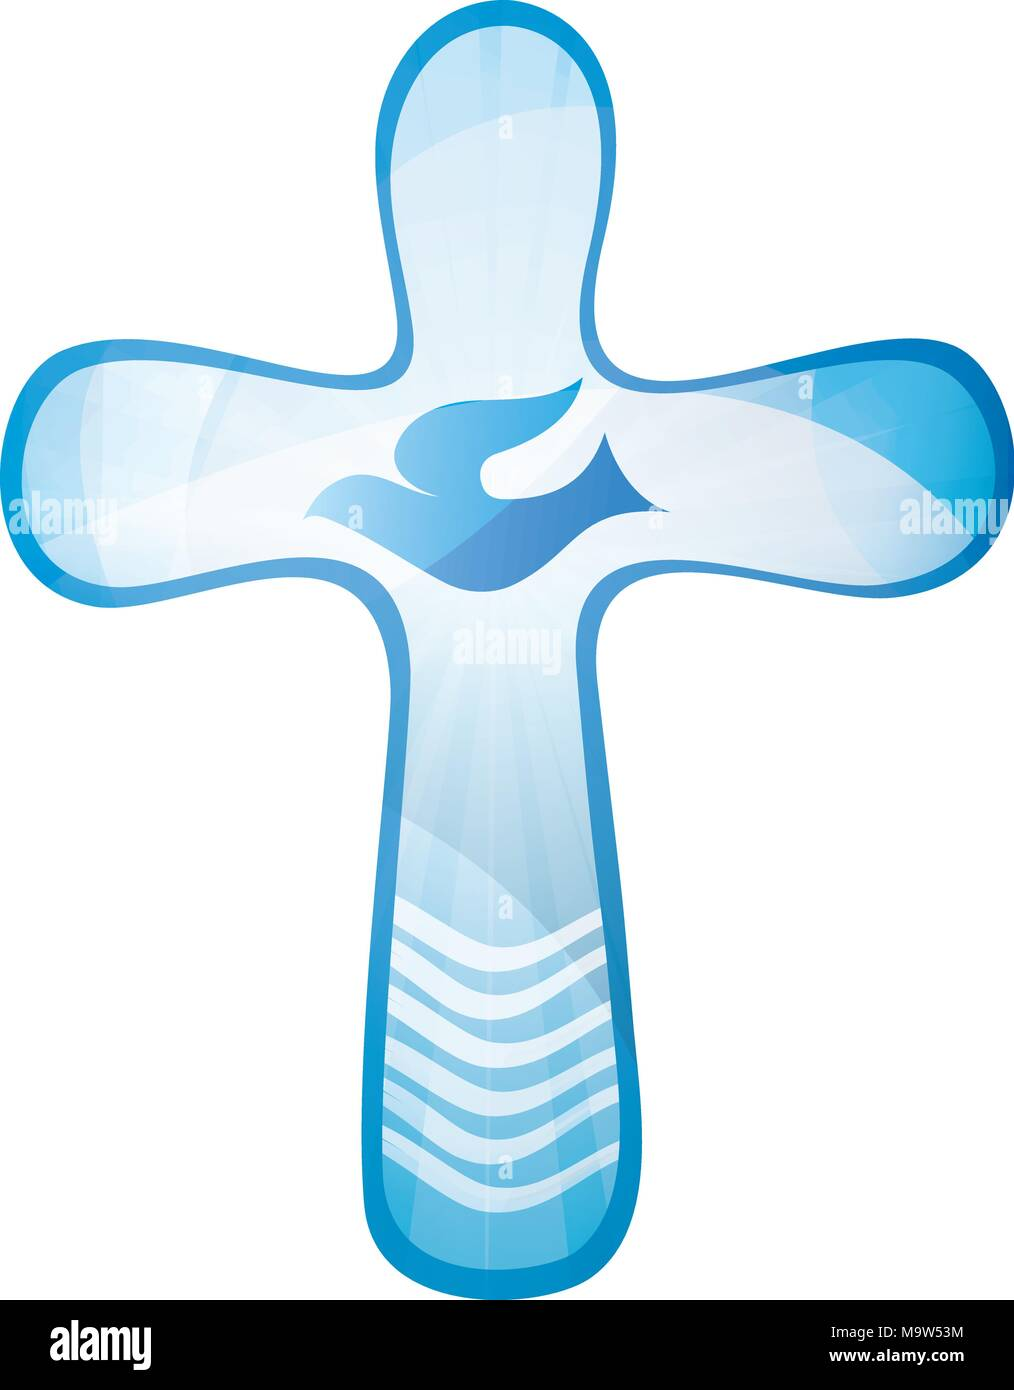 hight resolution of baptism christian cross with dove and waves of water on a blue background religious sign isolated